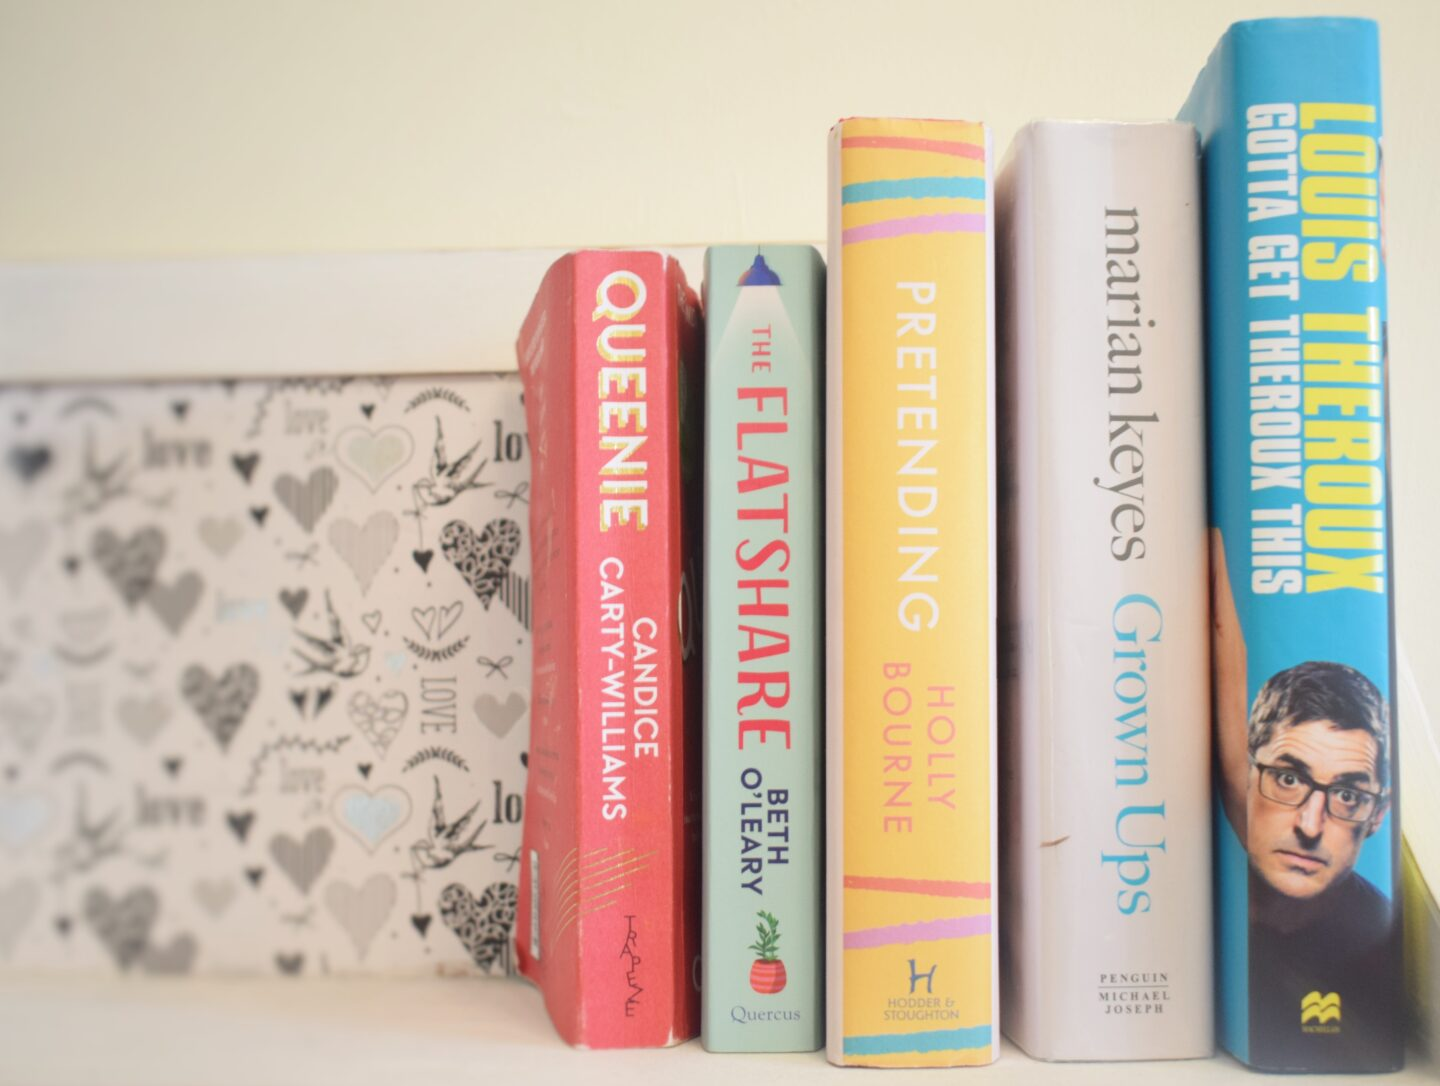 All the books I have read during lockdown – spoiler free reviews